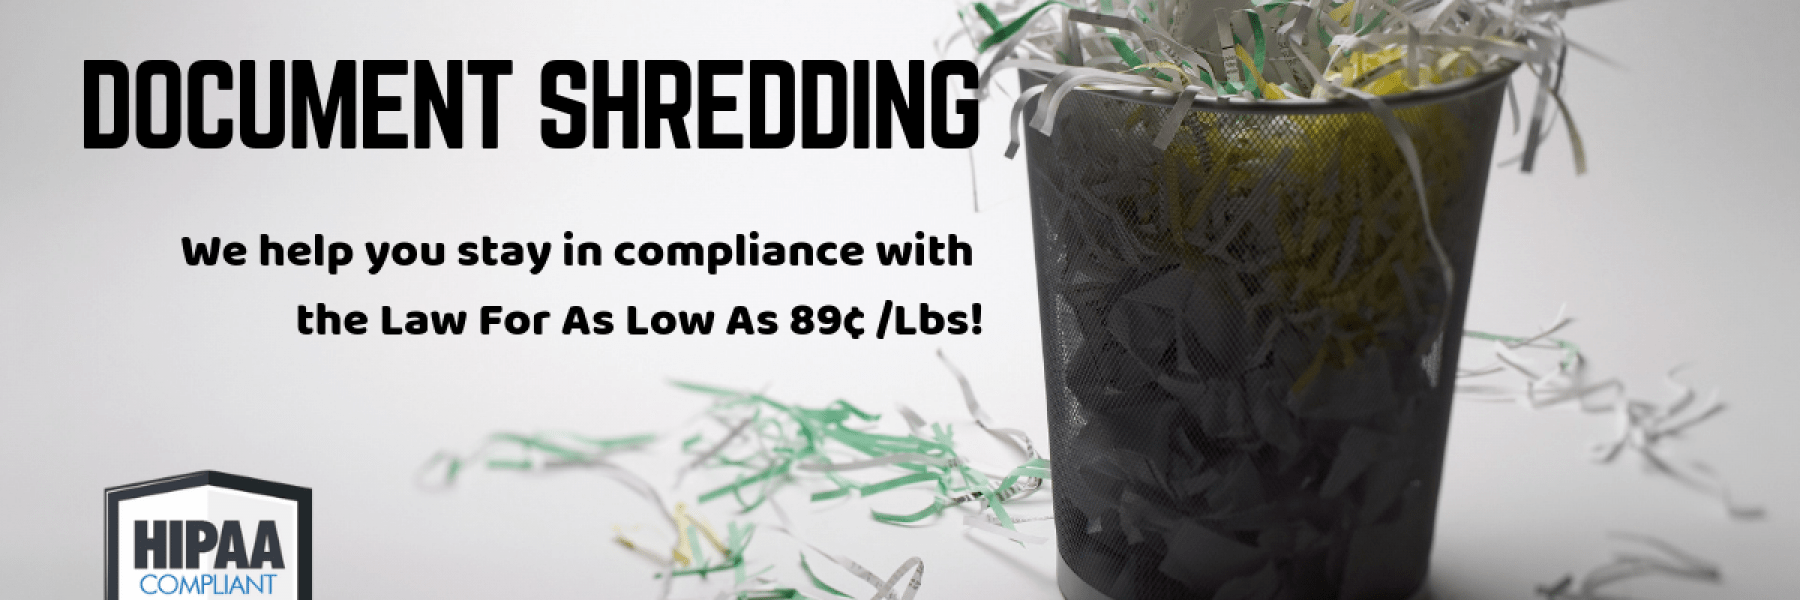 Gardner MA Document Shredding Service